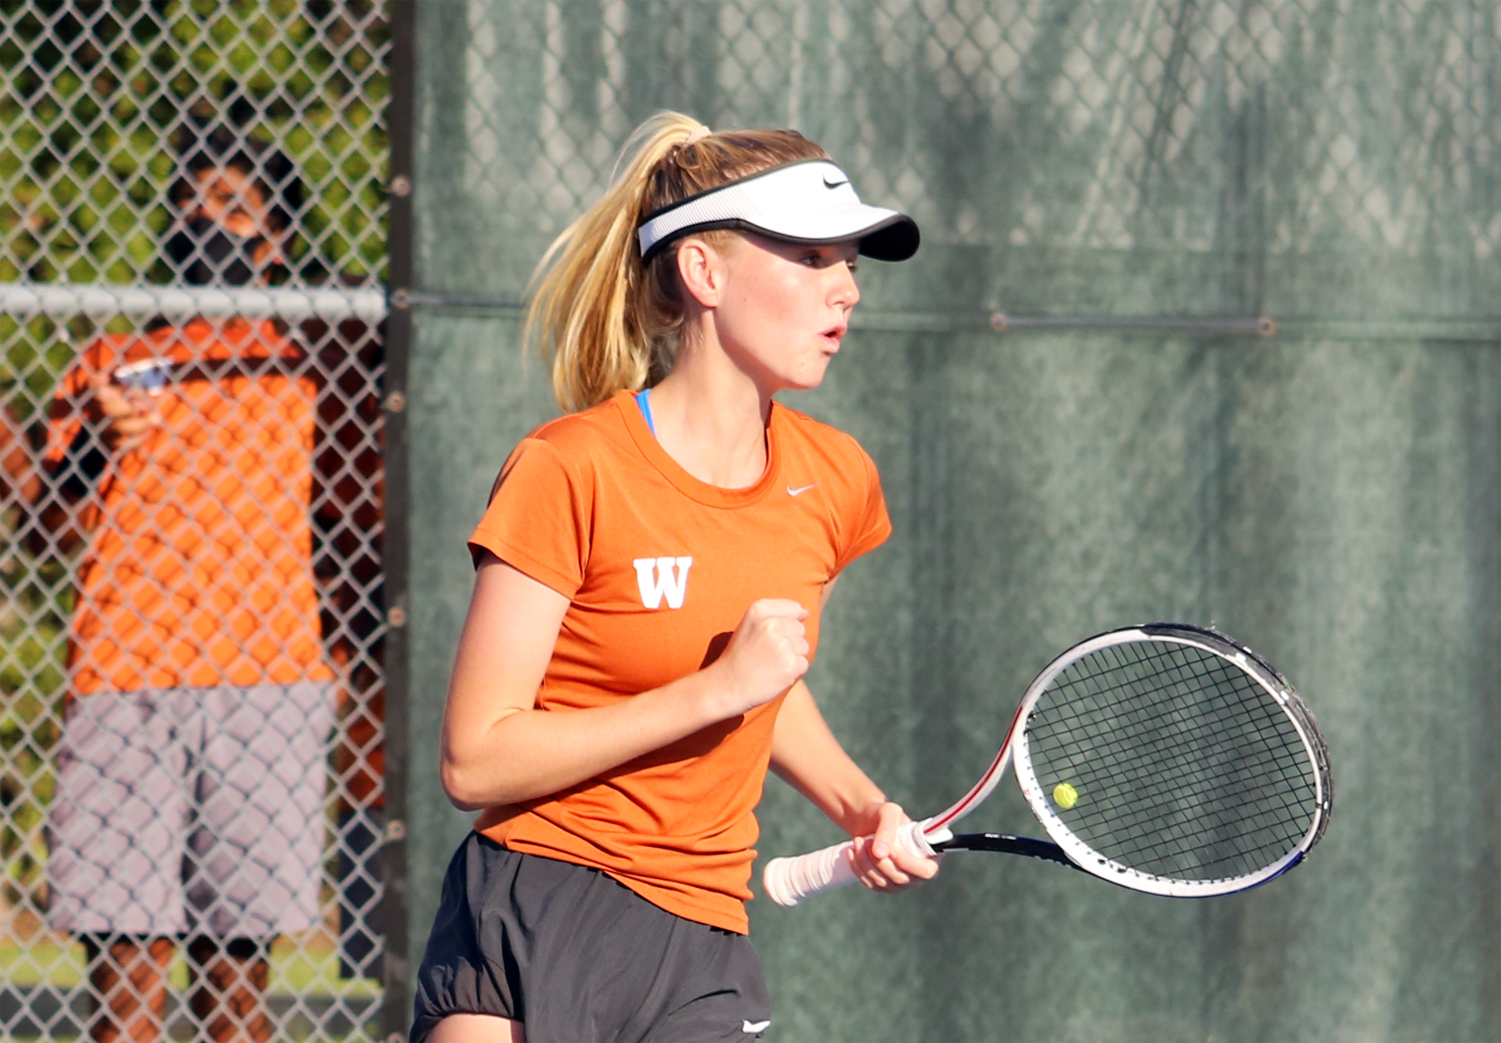 Embellishing+a+History+of+Spirited+Victory%2C+Varsity+Tennis+Wins+12th+Consecutive+District+Title